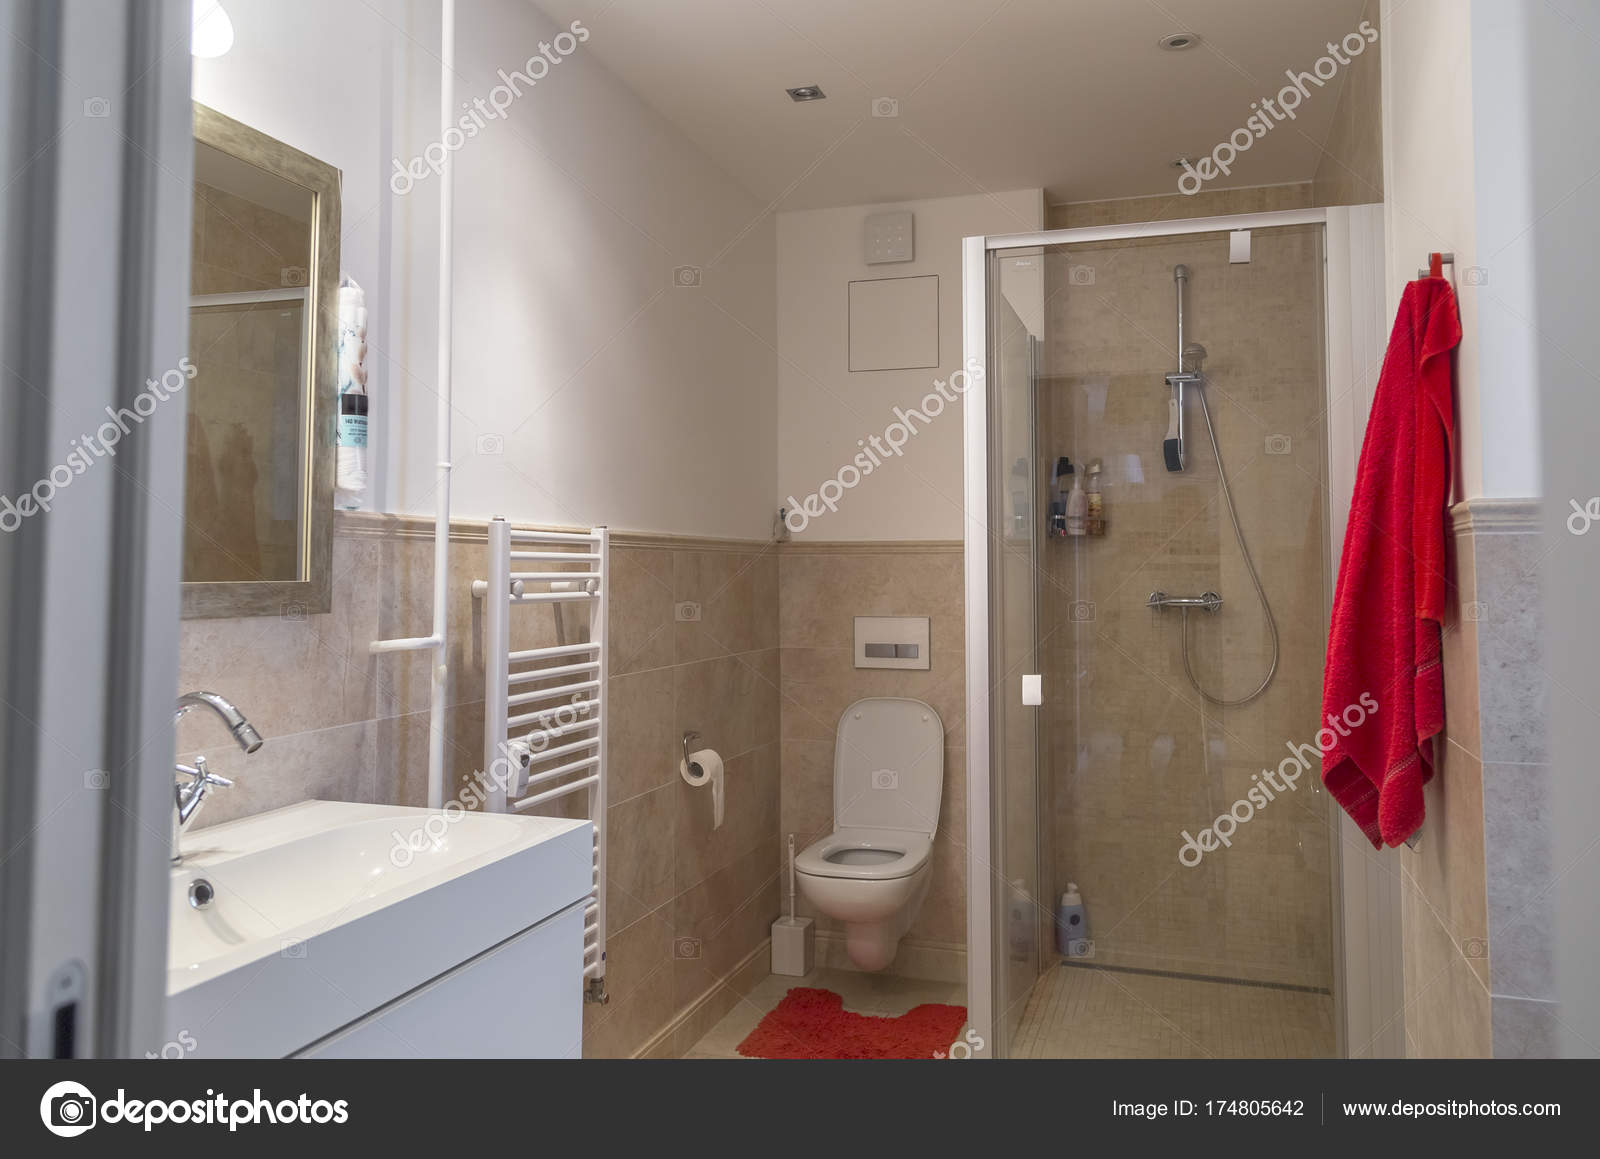 Nice Bathroom In A Two Room Apartment Stock Photo C Ondrooo 174805642 - Nice-apartment-bathrooms